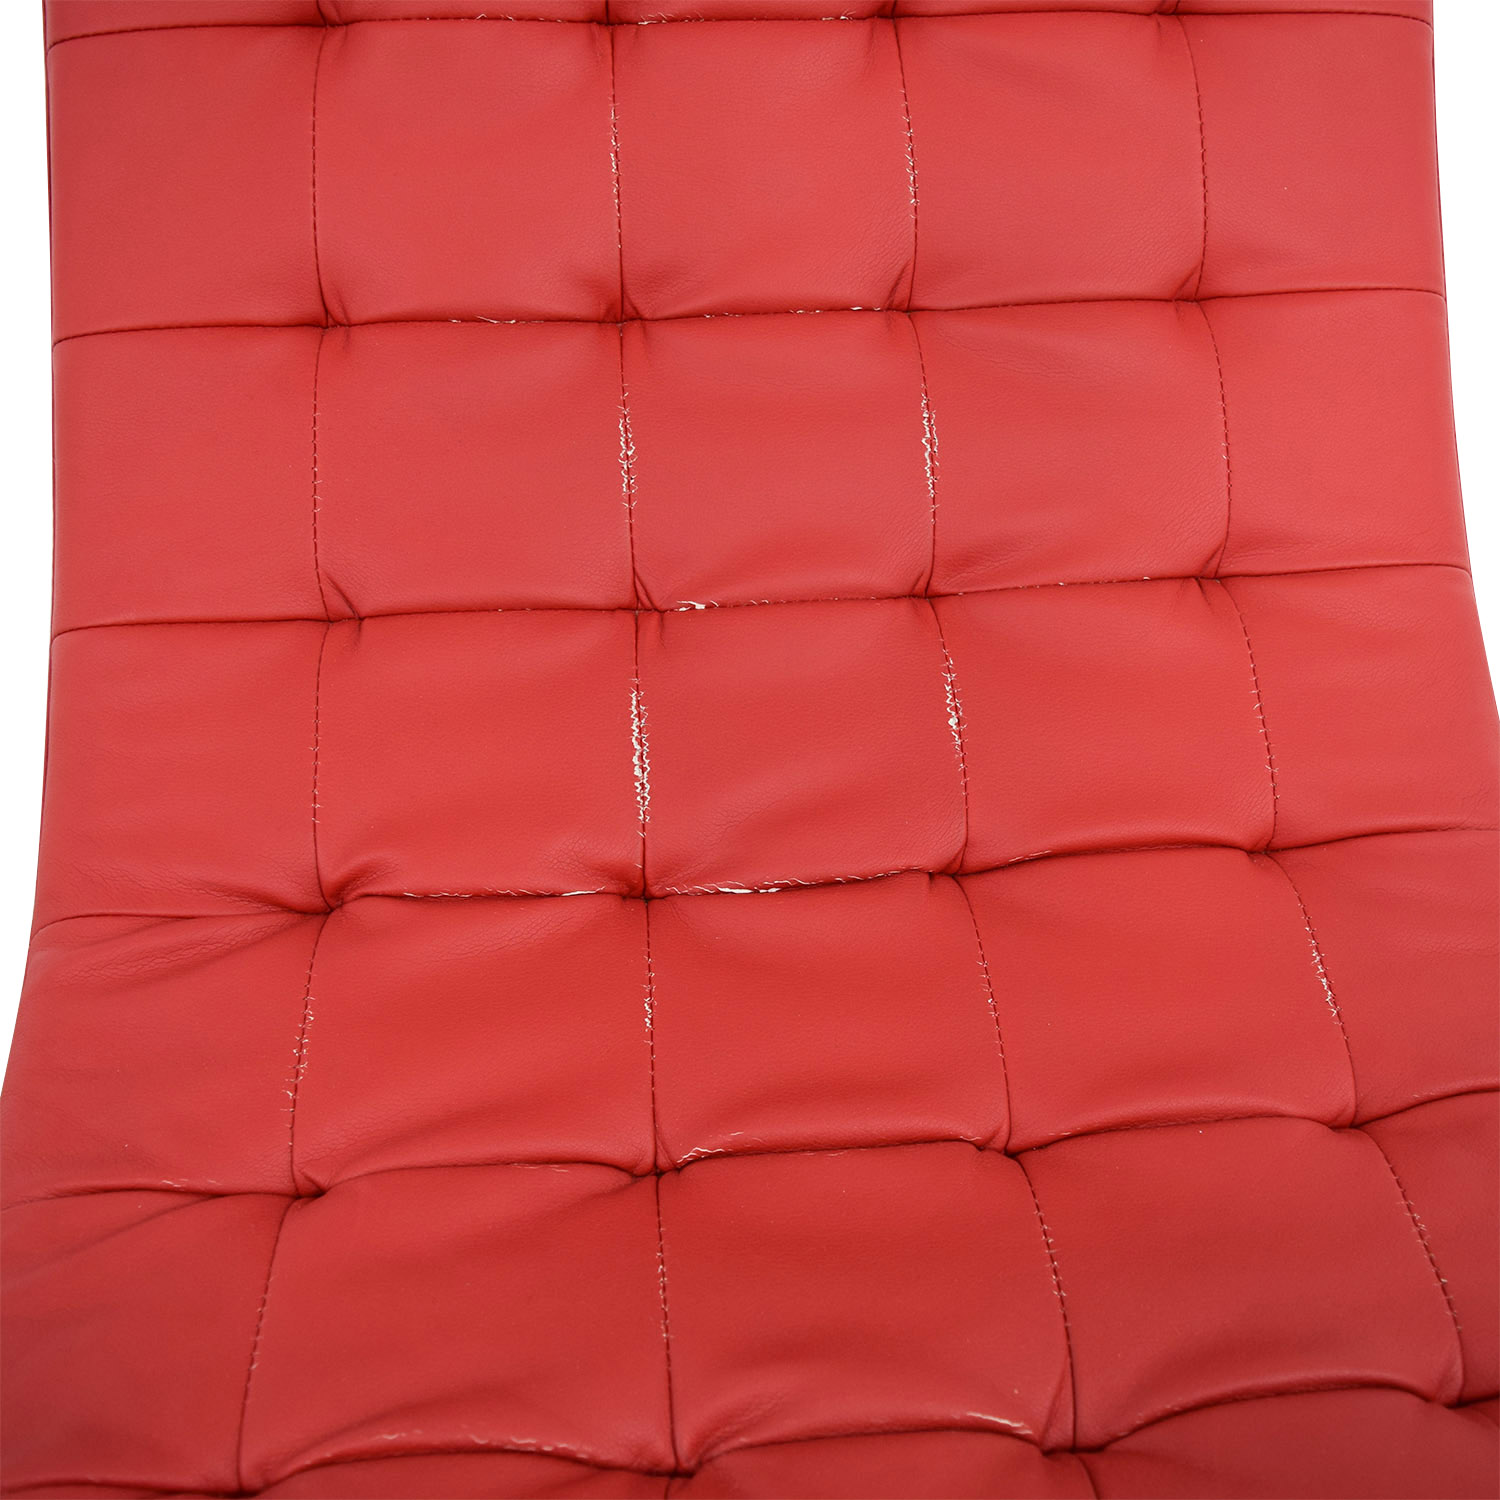 Red Tufted Chaise Lounge nj